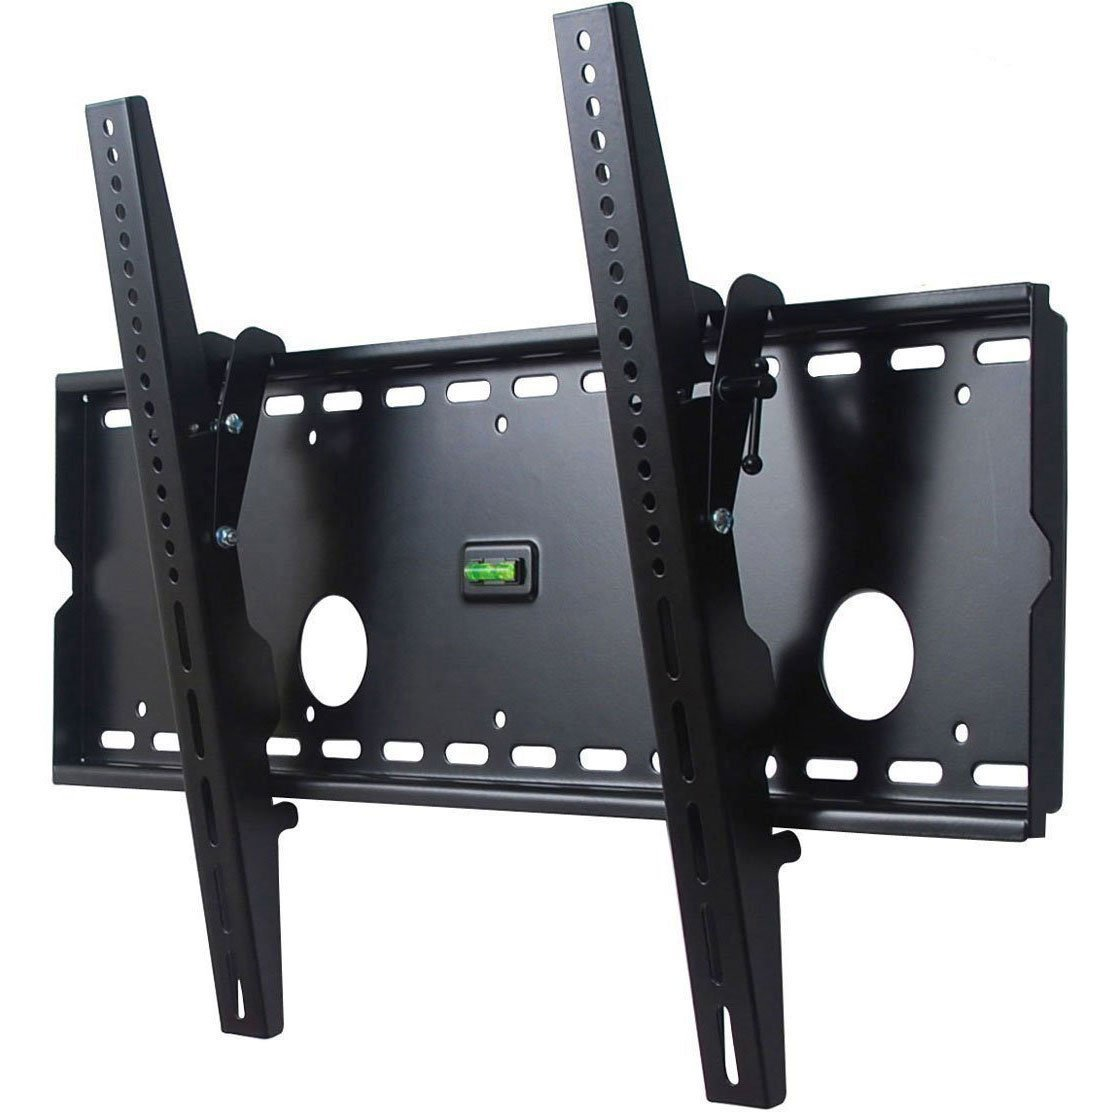 VideoSecu Black Low Profile TV Wall Mount Bracket for Sharp LC-42D43U LCD 42 inch HDTV TV M80 crosley cambridge 60 in low profile tv stand black